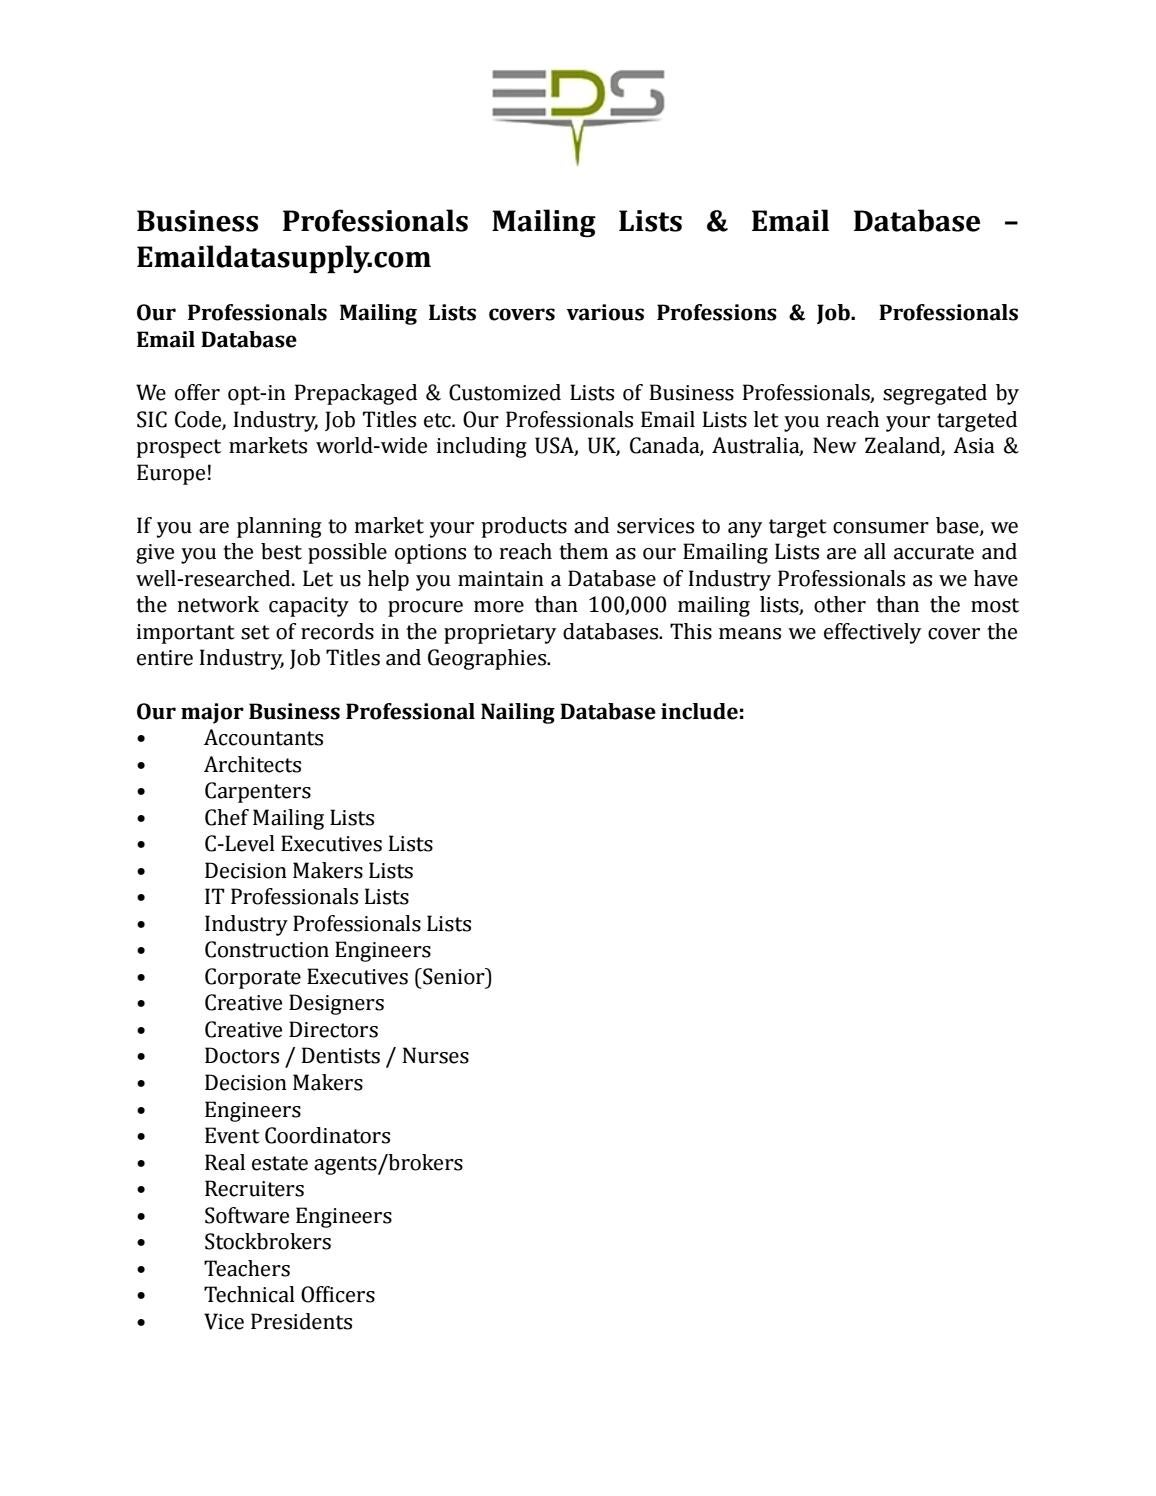 Business Professionals Mailing Lists & Email Database